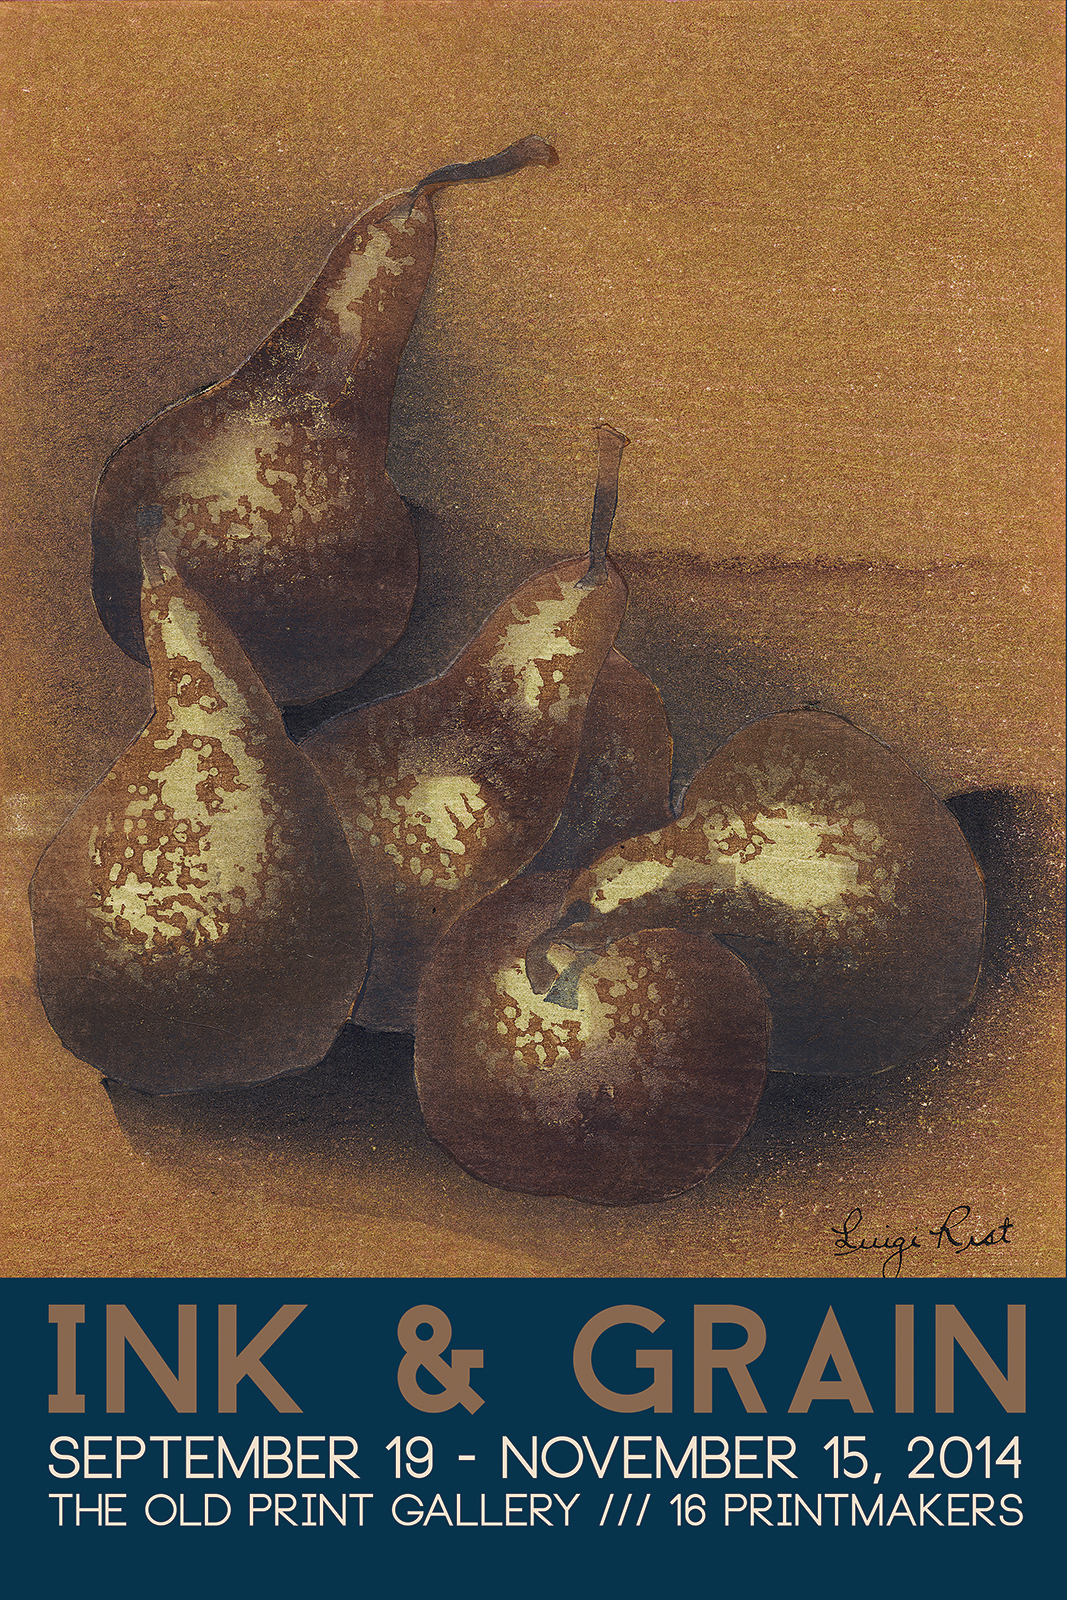 Ink & Grain small image rgb